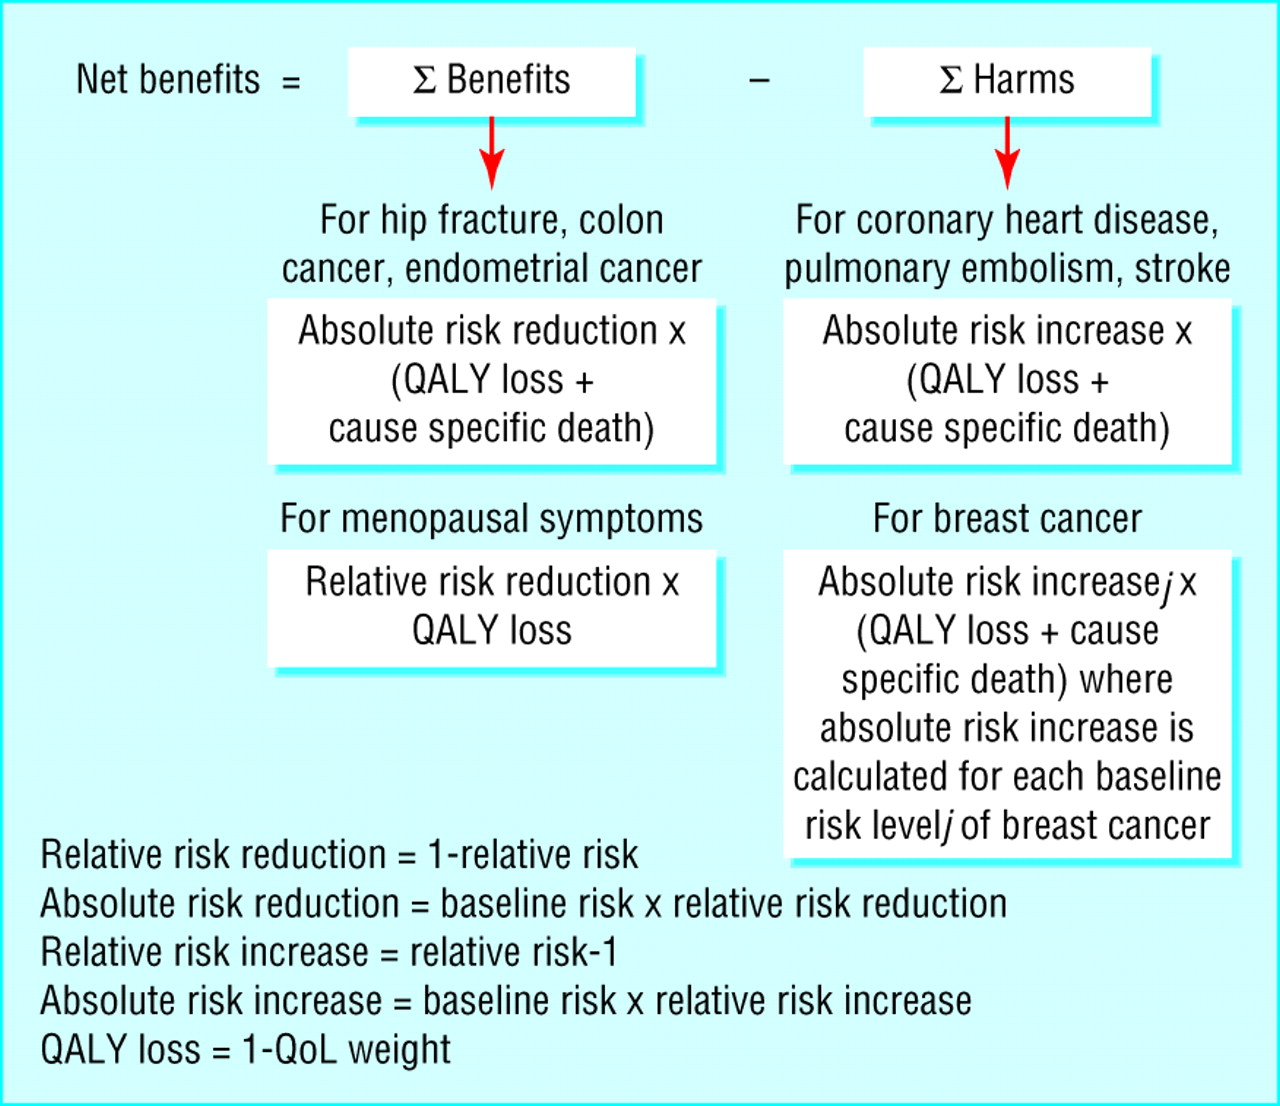 Benefits And Harms Associated With Hormone Replacement. Lawyers In Rapid City Sd U S Army War College. Vps Trial No Credit Card Aqua Water Softeners. Business Backup Software Colleges In Elgin Il. Carpet Cleaning Springdale Ar. Doyle Funeral Home Morristown. University Of South Florida Athletics. Average Cost Dental Cleaning. Commercial Moving Company Cheapest Car In Usa